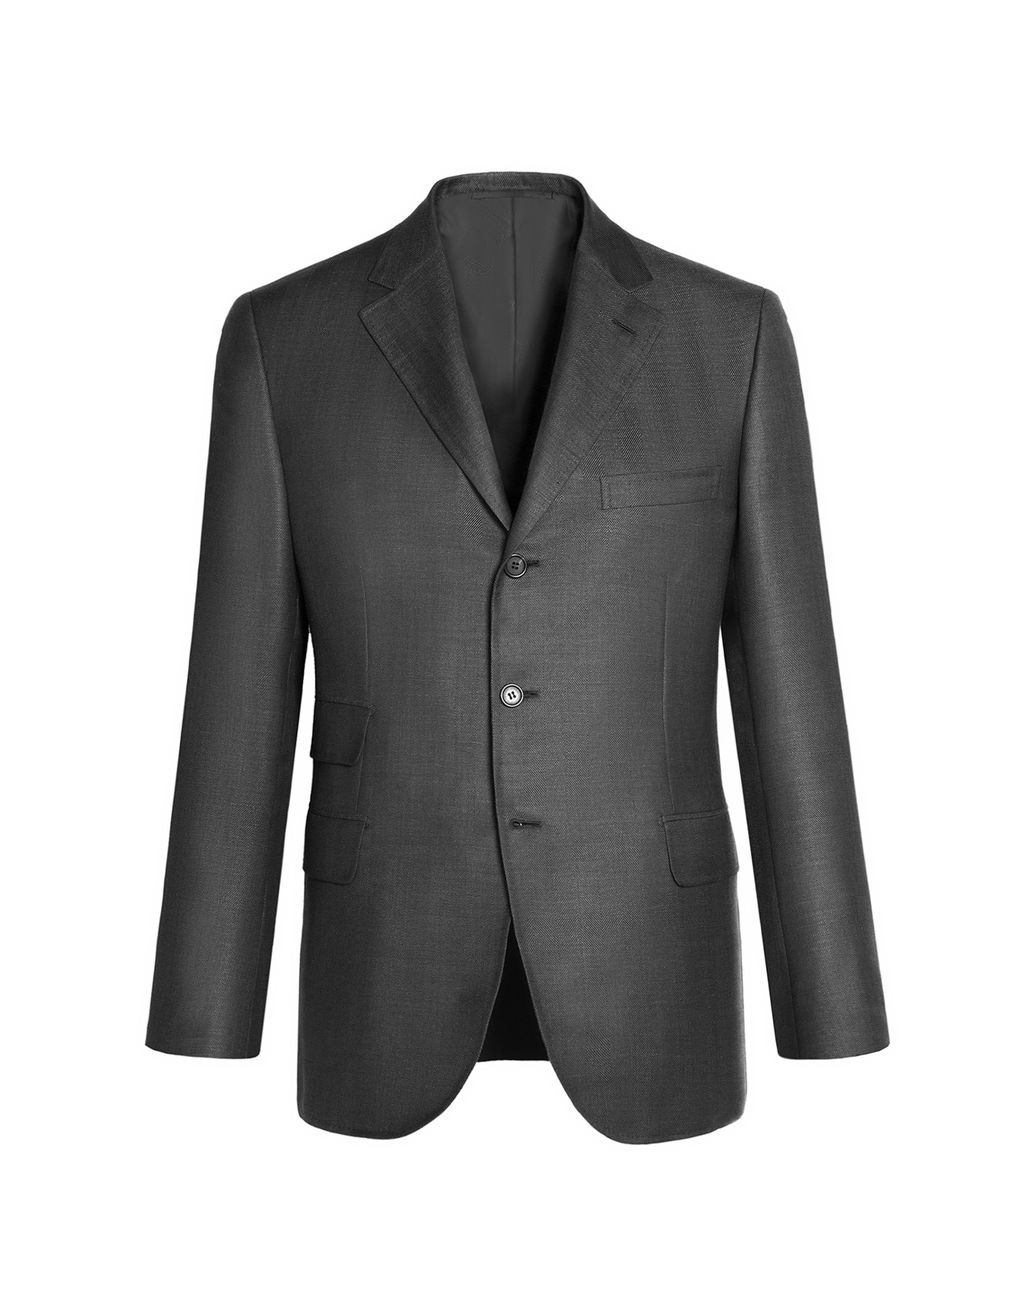 BRIONI Grey Herringbone F-Light Unlined Jacket Jackets U f